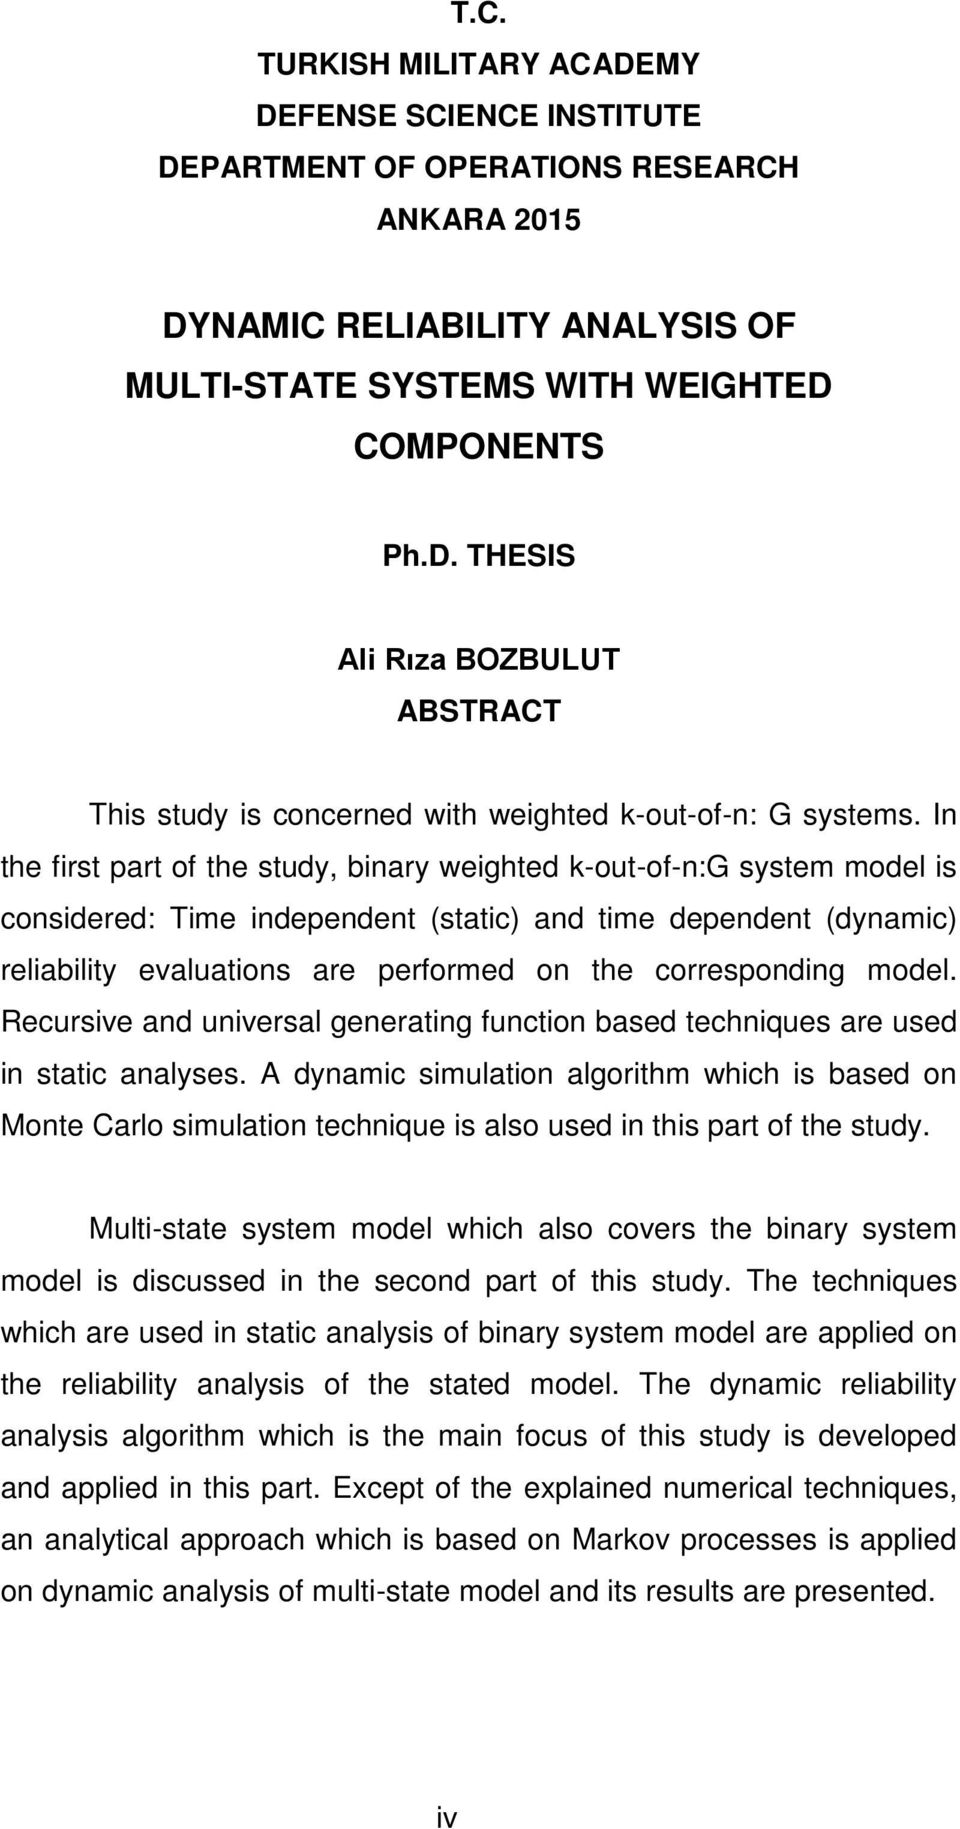 Recursve and unversal generatng functon based technques are used n statc analyses. A dynamc smulaton algorthm whch s based on Monte Carlo smulaton technque s also used n ths part of the study.